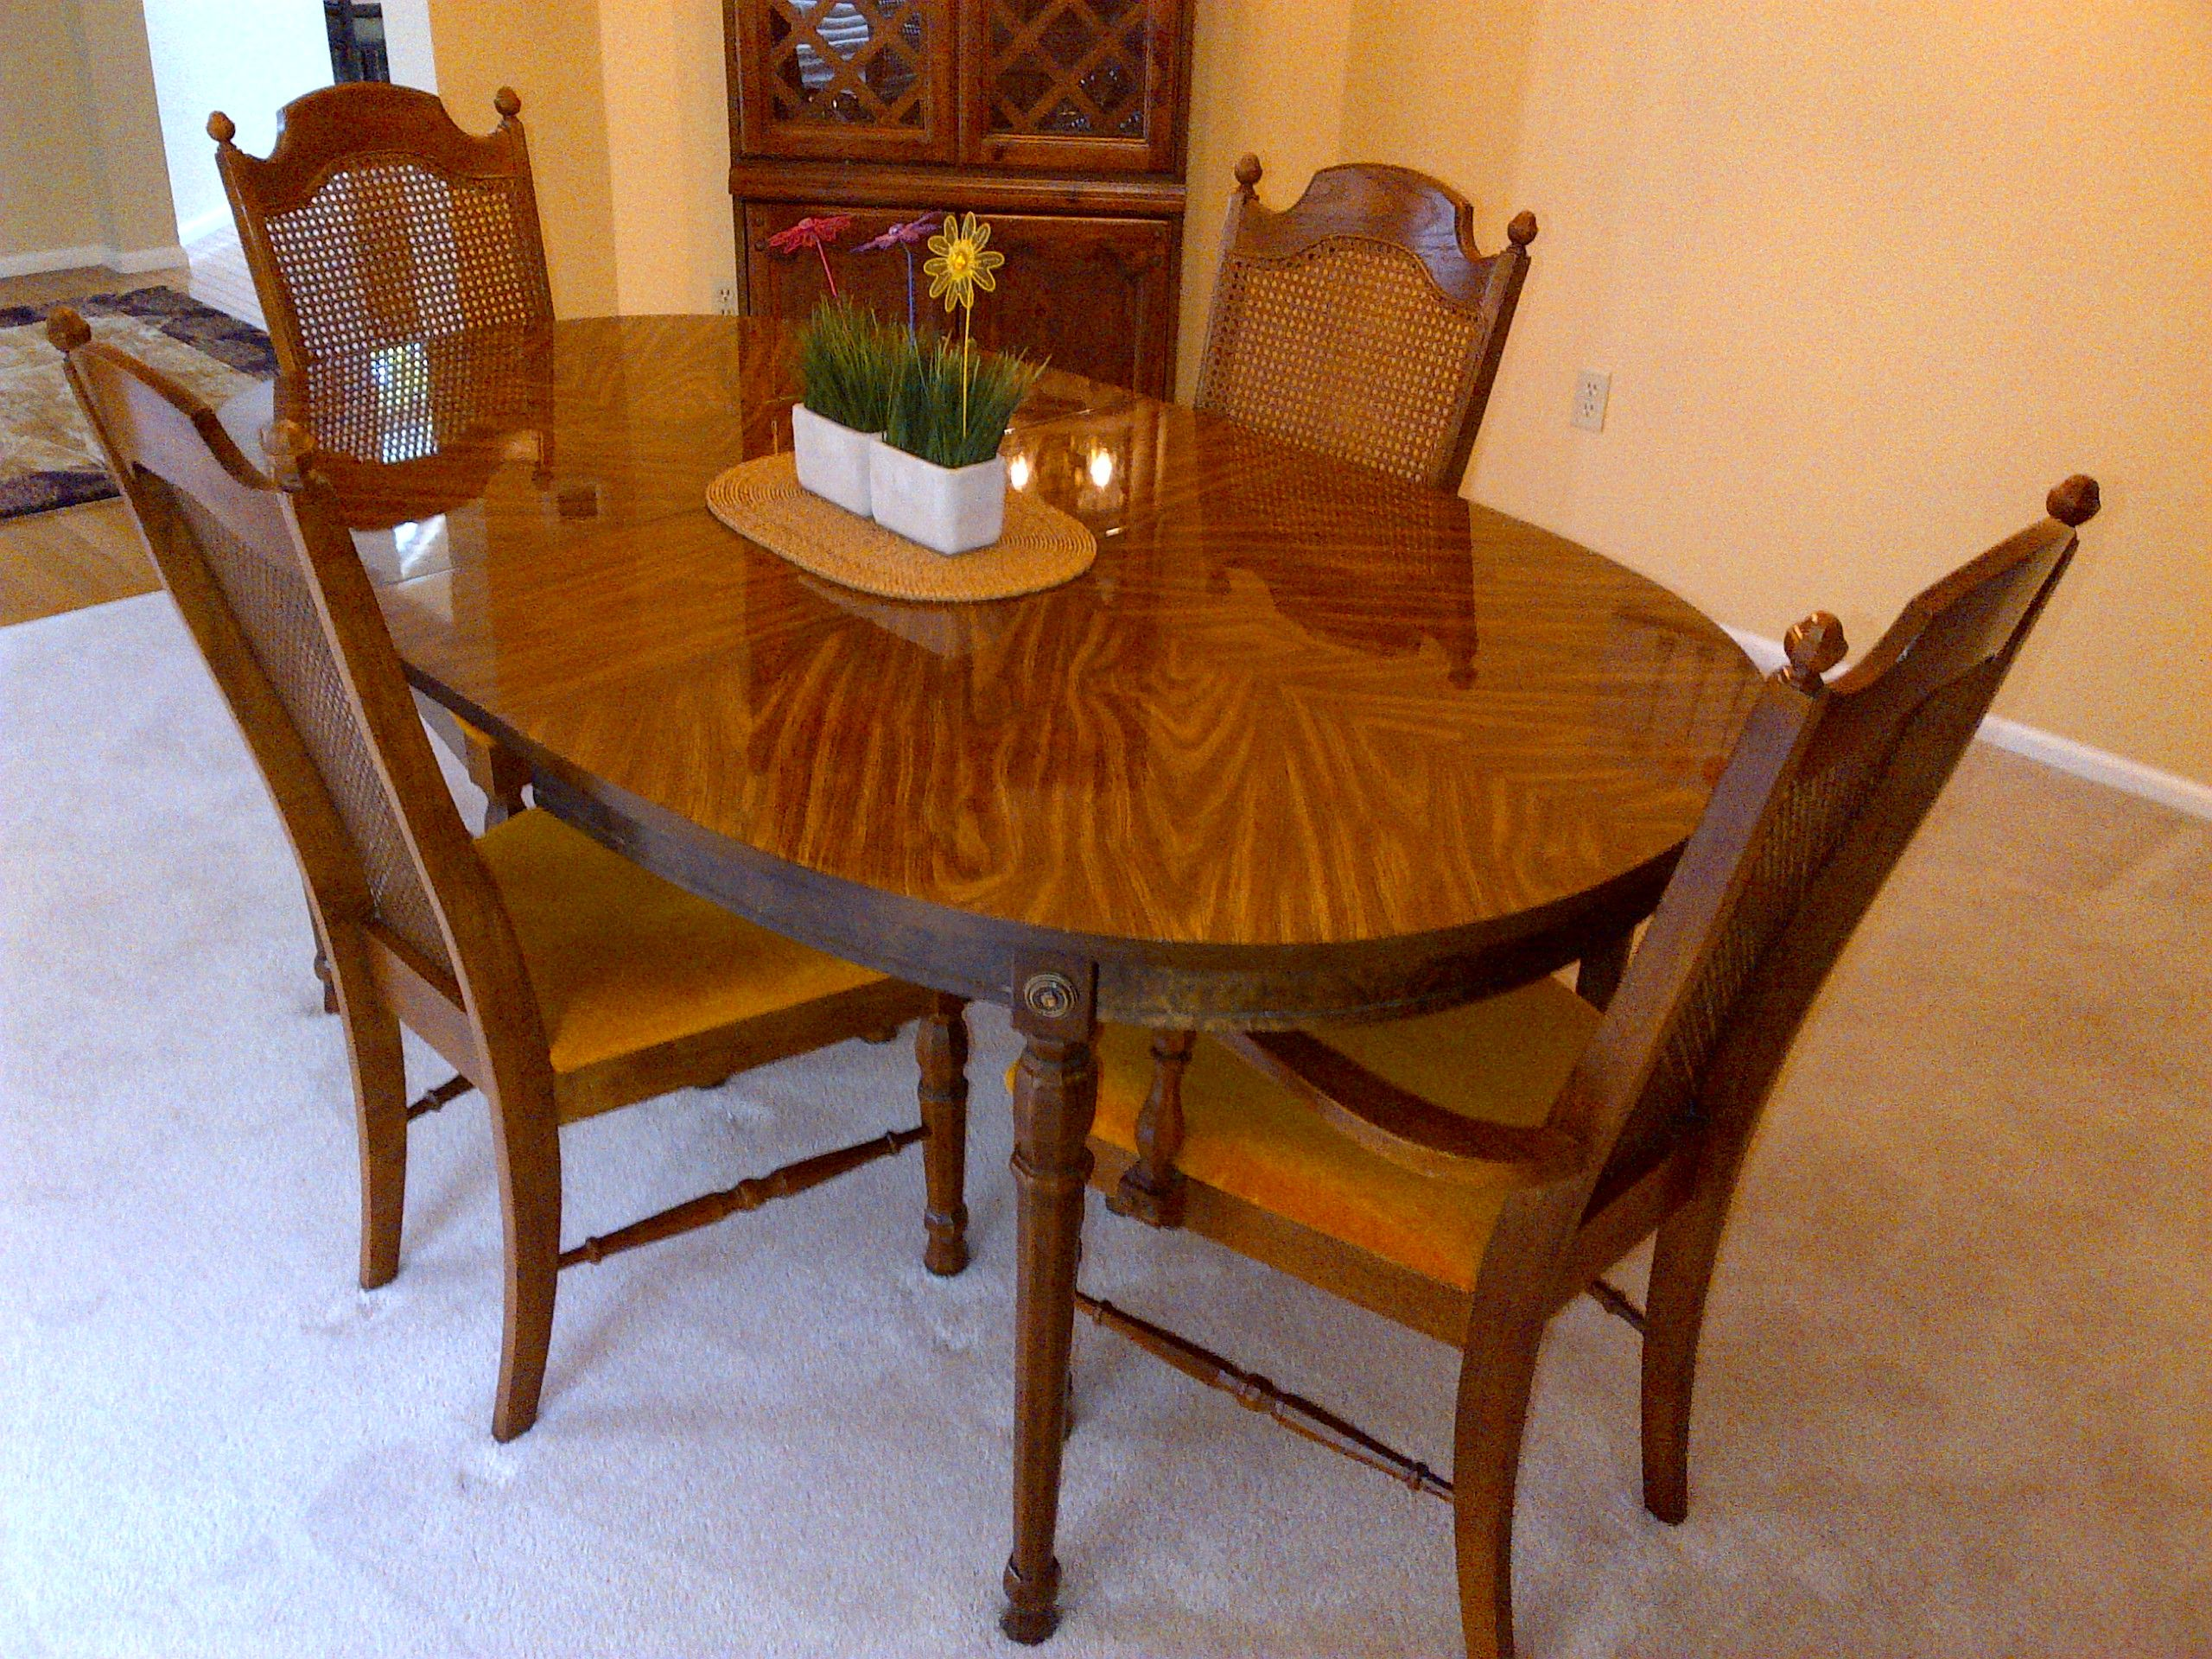 Dining Room Table And Chairs In Oarkahuna S Garage Sale Wildwood